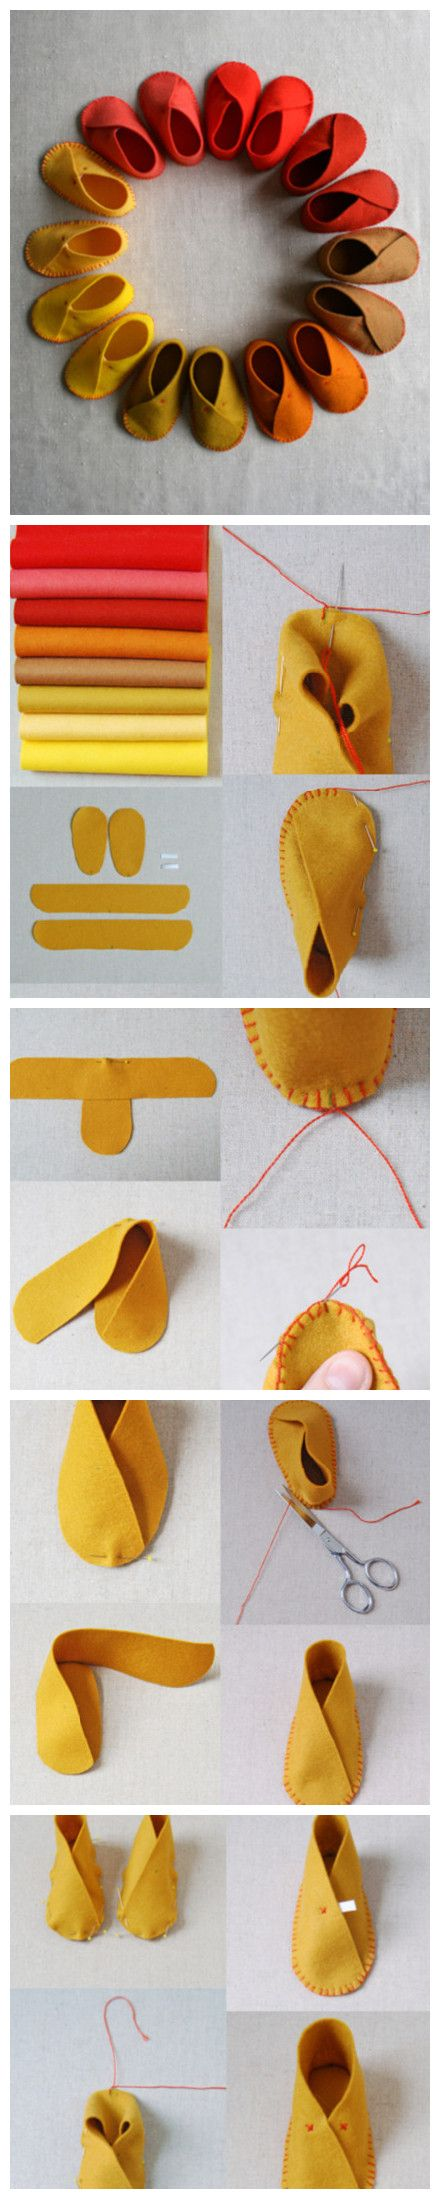 Adorable Baby Moccasins - Anyone Can Make! – The Cute Company